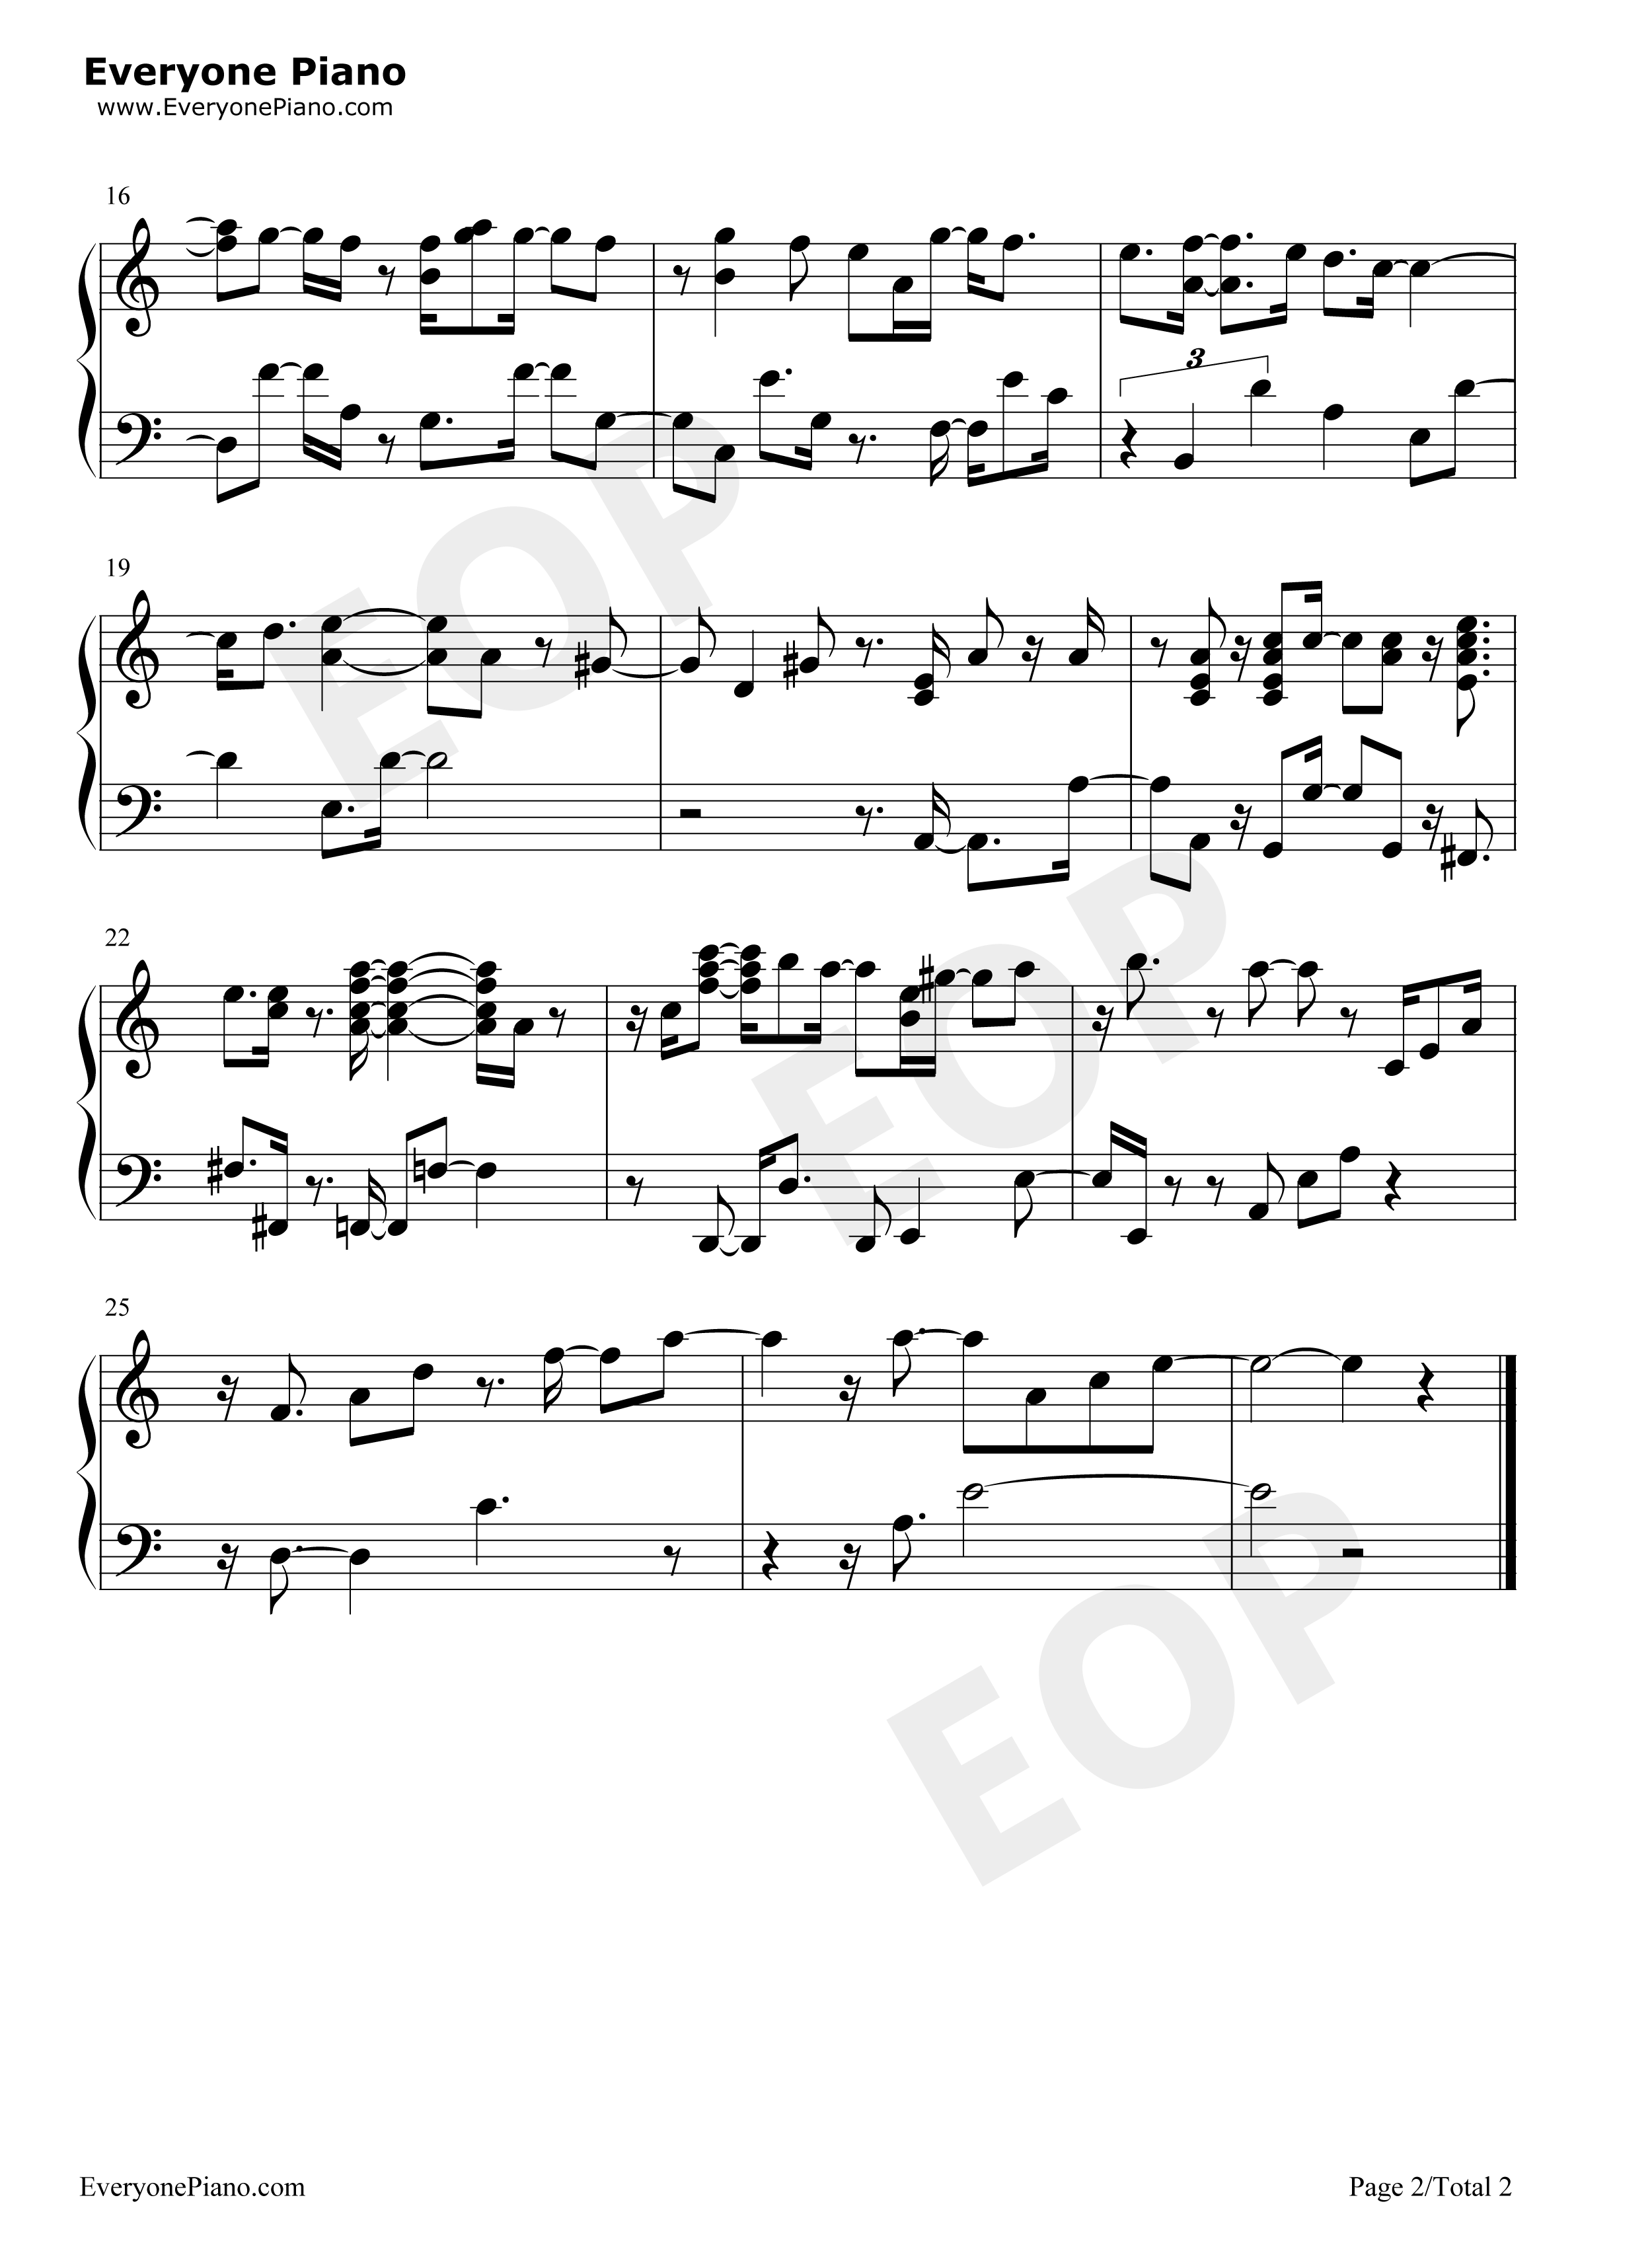 Gloomy sunday billie holiday stave preview 2 free piano sheet listen now print sheet gloomy sunday billie holiday stave preview 2 hexwebz Image collections